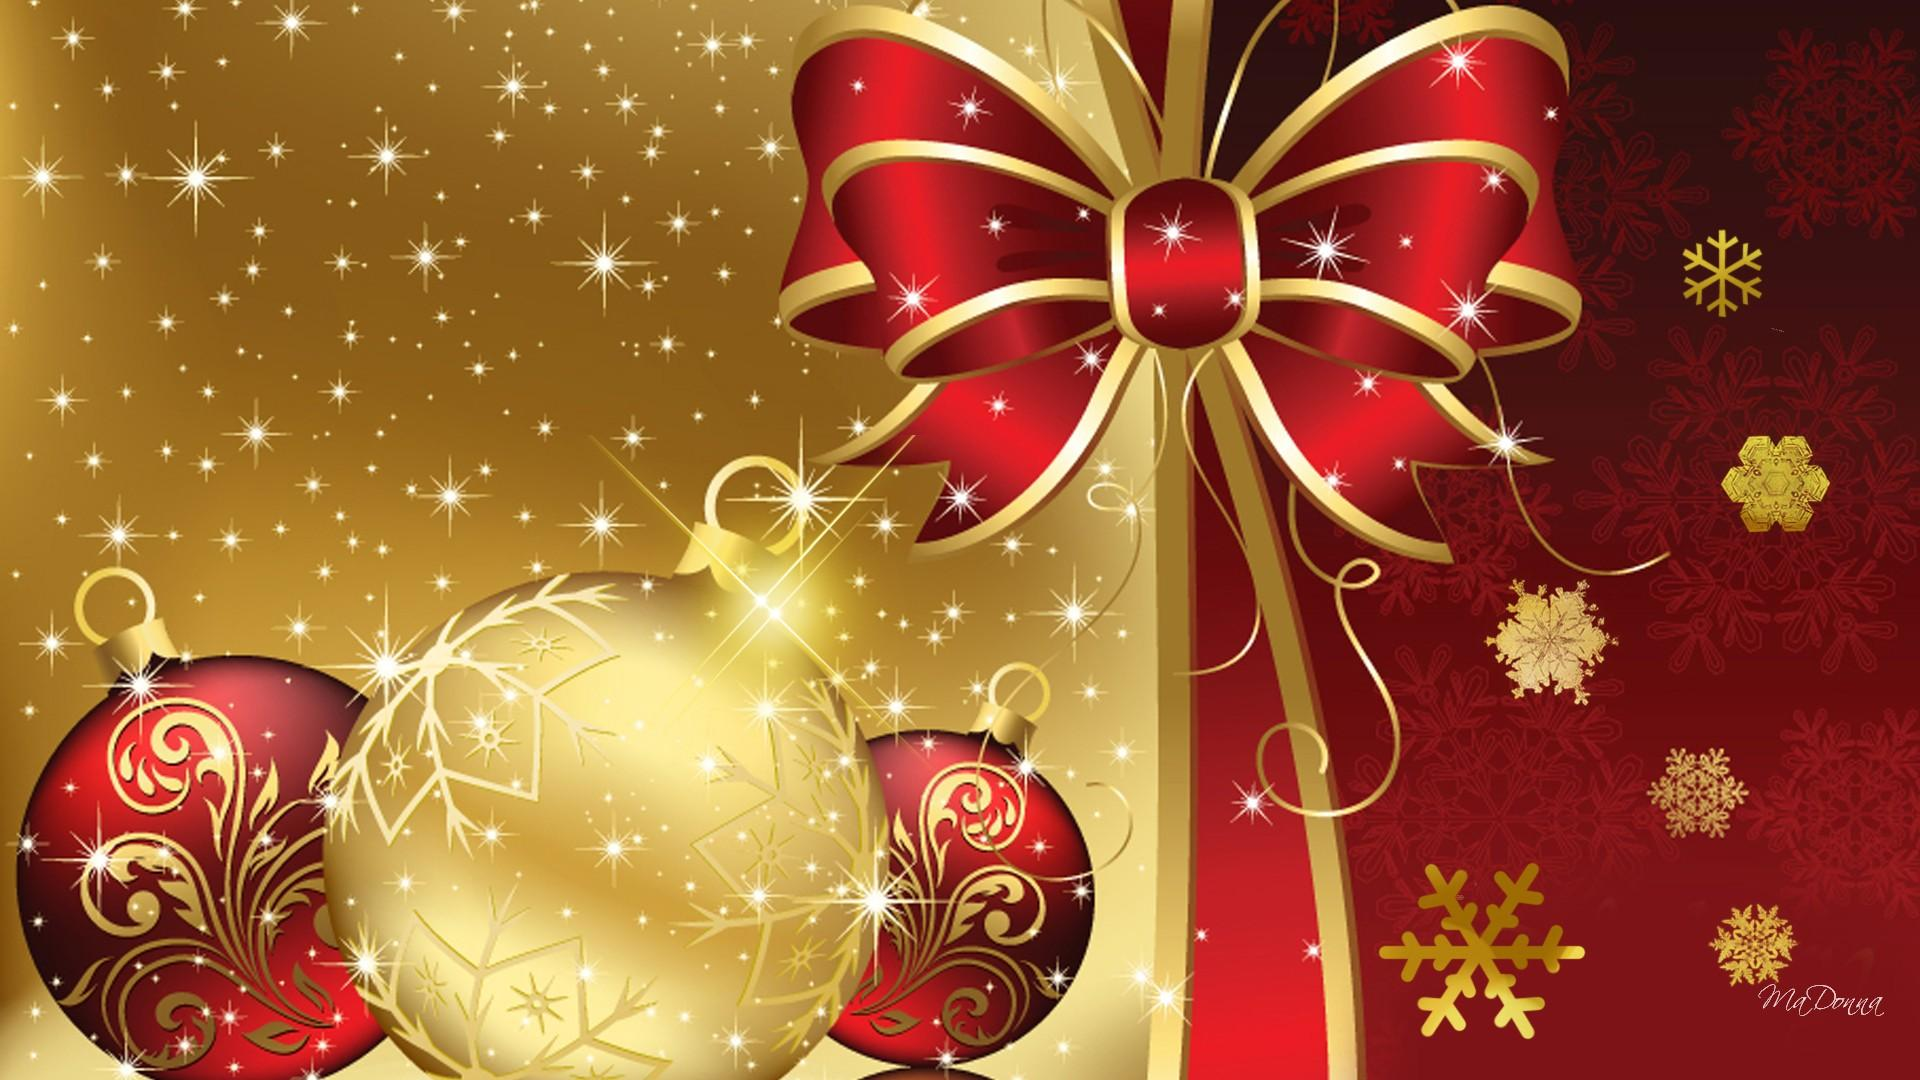 Merry Christmas Free HD Wallpaper